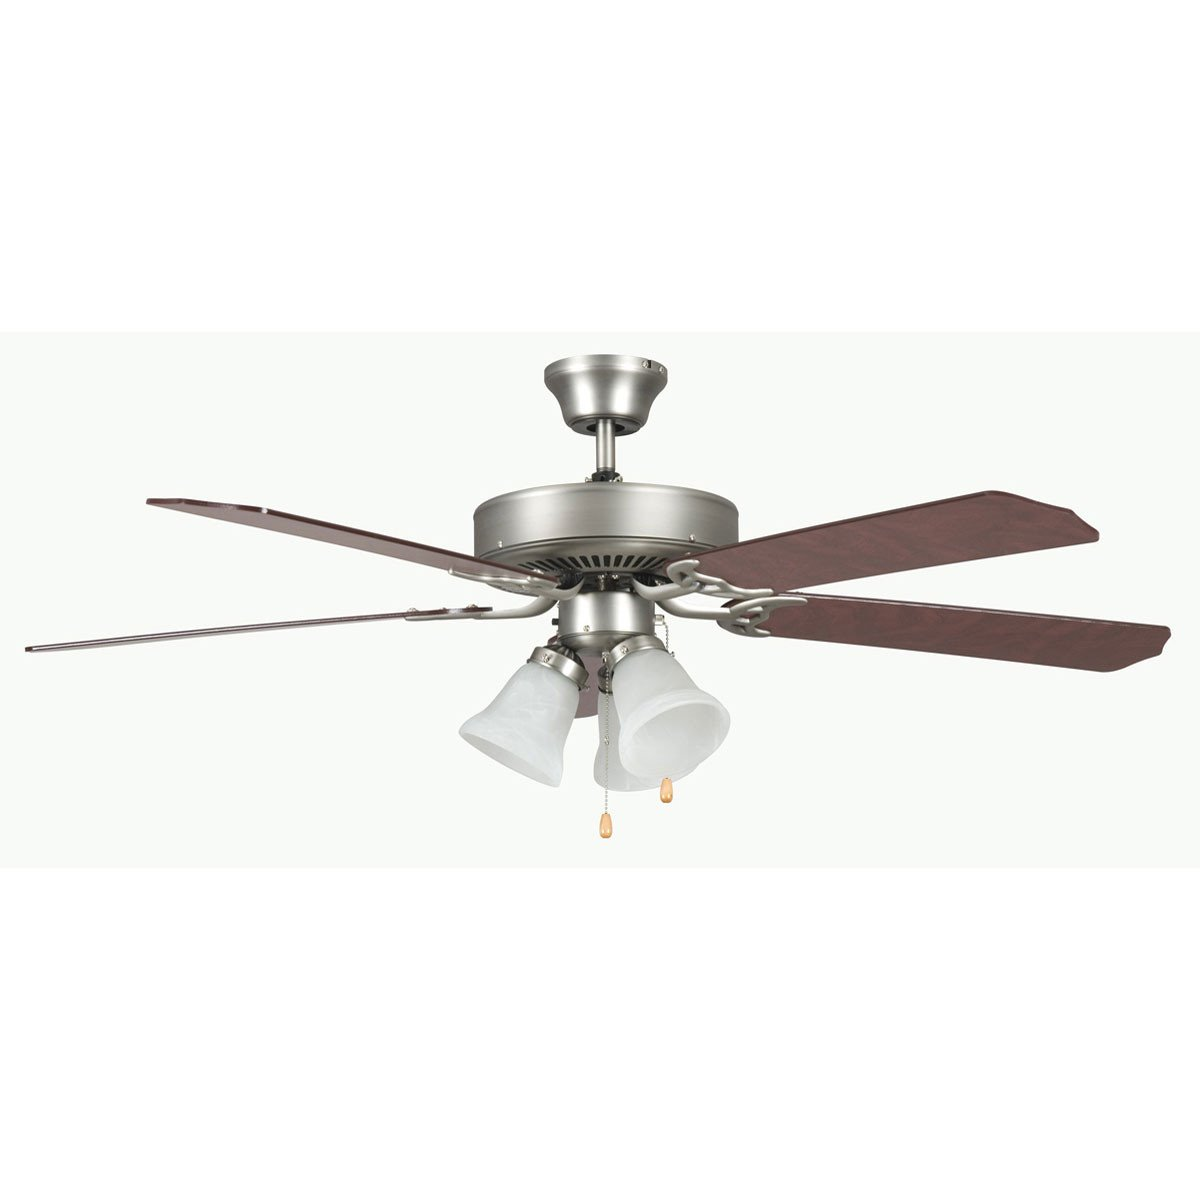 "Concord Fans 42"" Contemporary Small Satin Nickel Ceiling Fan with Light Kit"